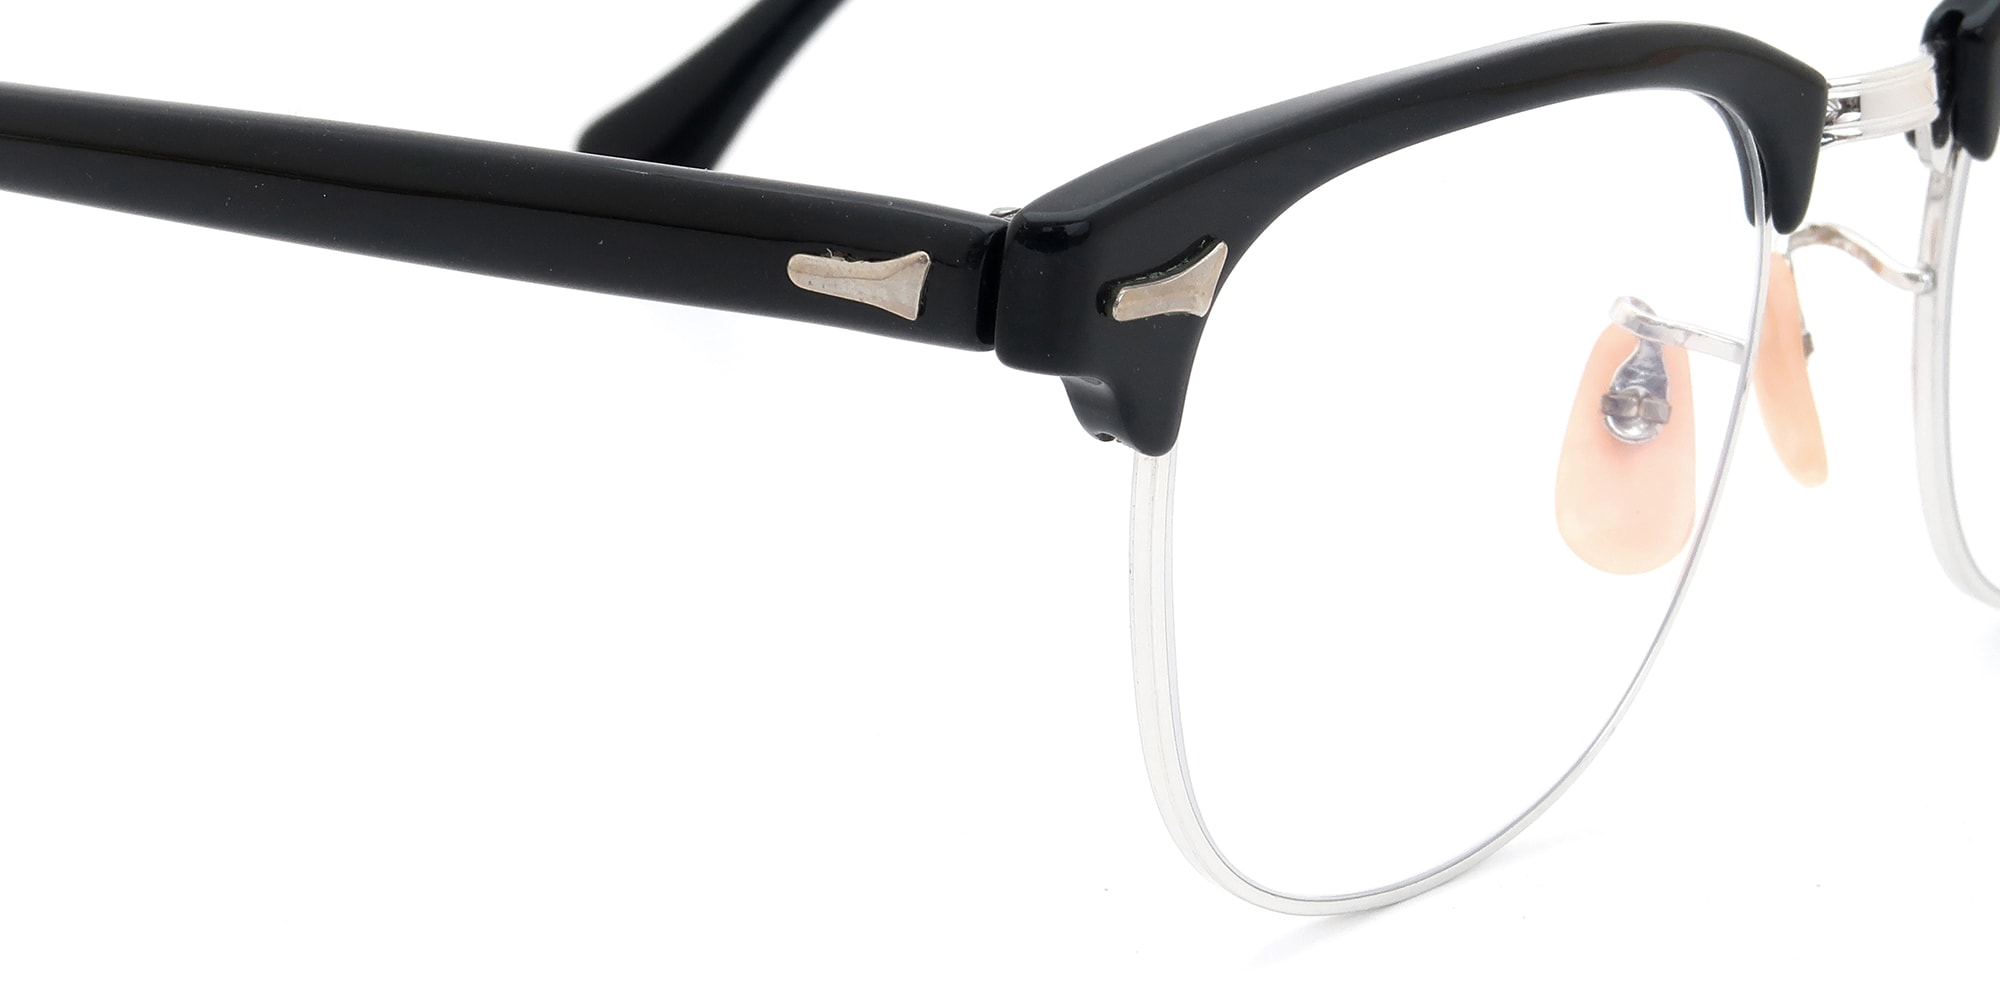 The Spectacle メガネ 1950s-60s Artcraft Optical Combination Black/WG 48-20 イメージ6